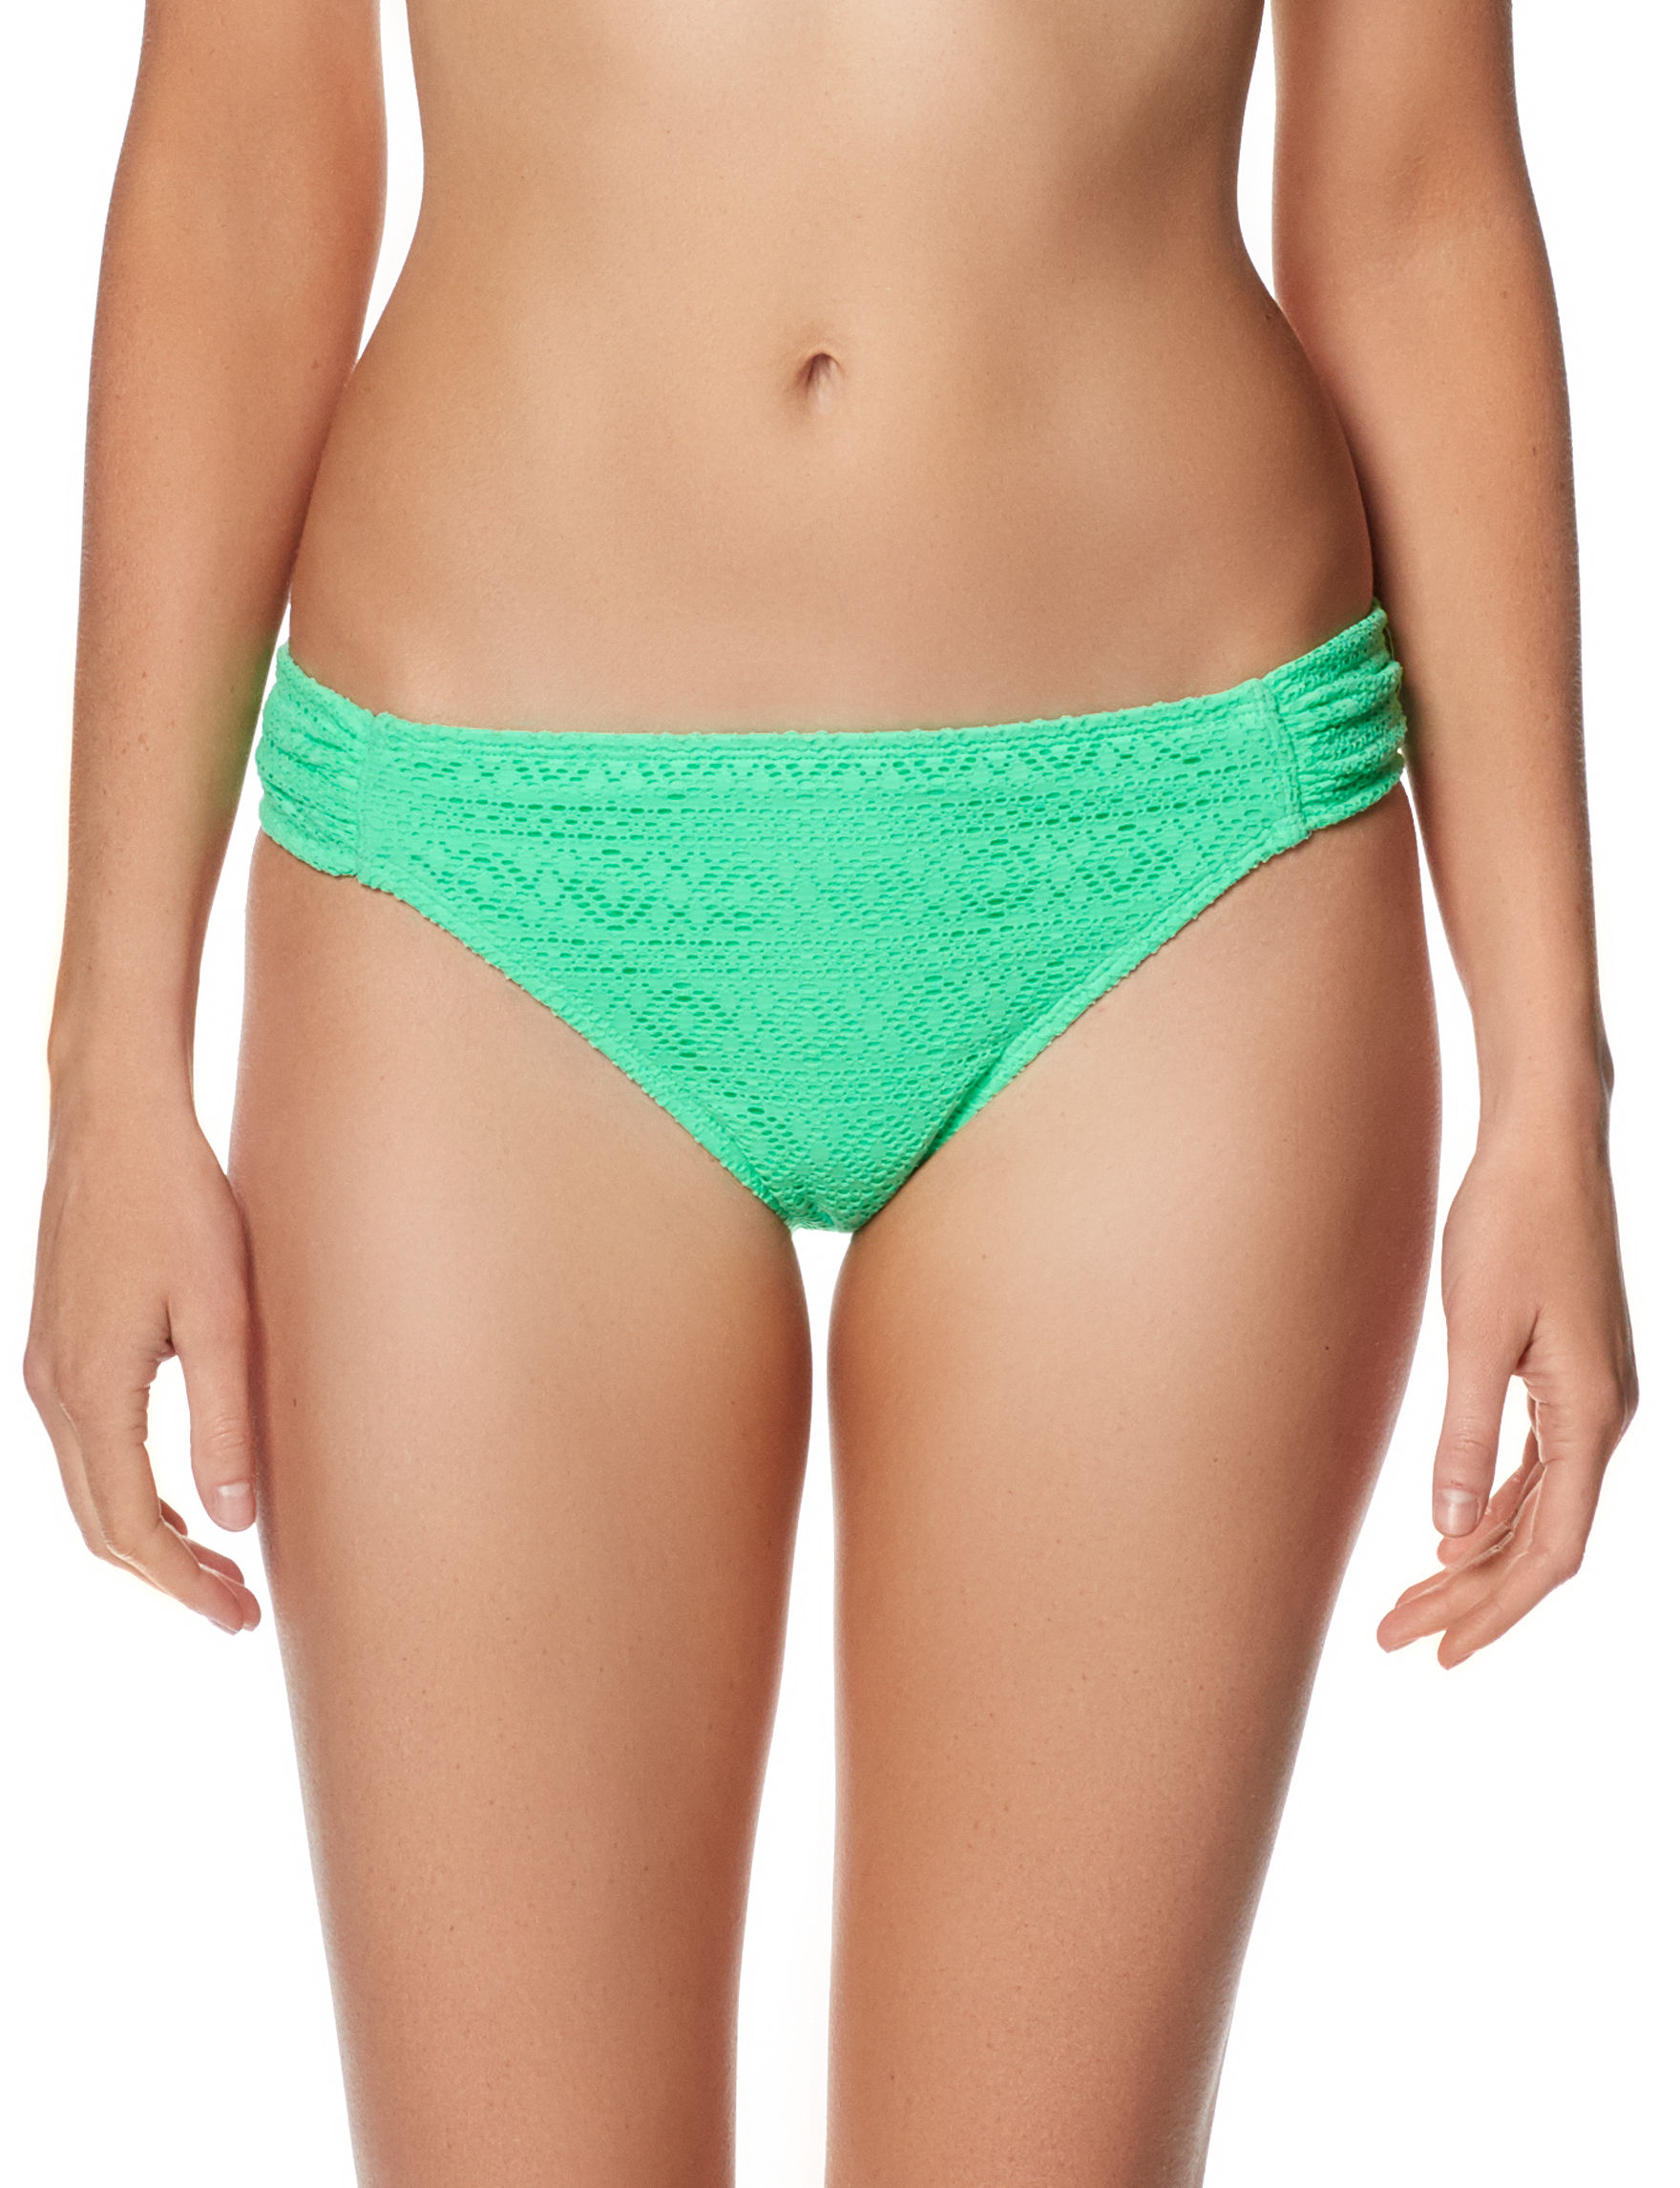 In Mocean Light Green Swimsuit Bottoms